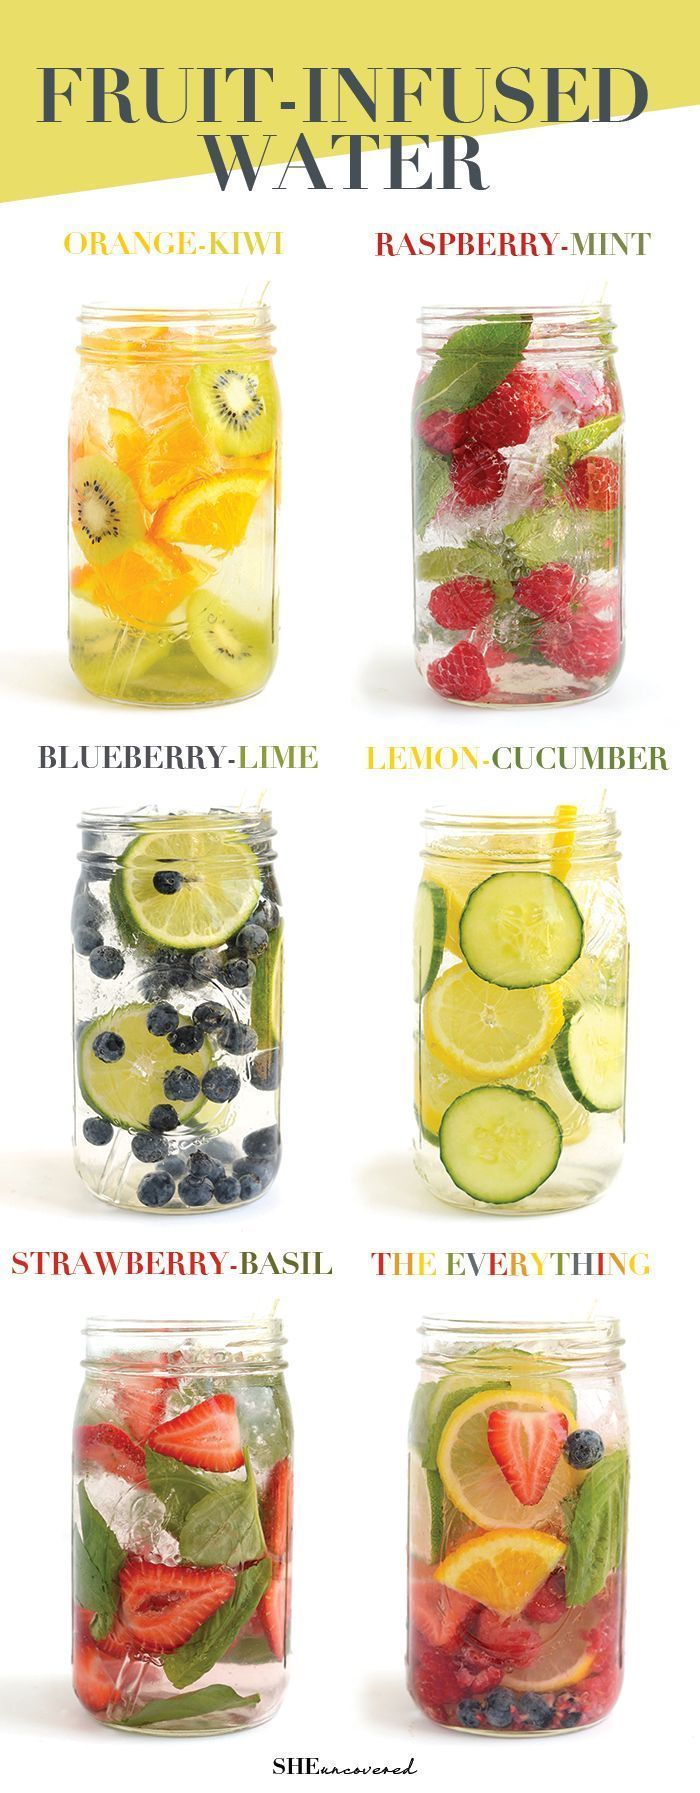 DIY Fruit and Herb Infused Water ☆ Join our Pinterest Fam: @SkinnyMeTea (140k+) ☆ Oh, also use our code 'Pinterest10' for 10% off your next teatox